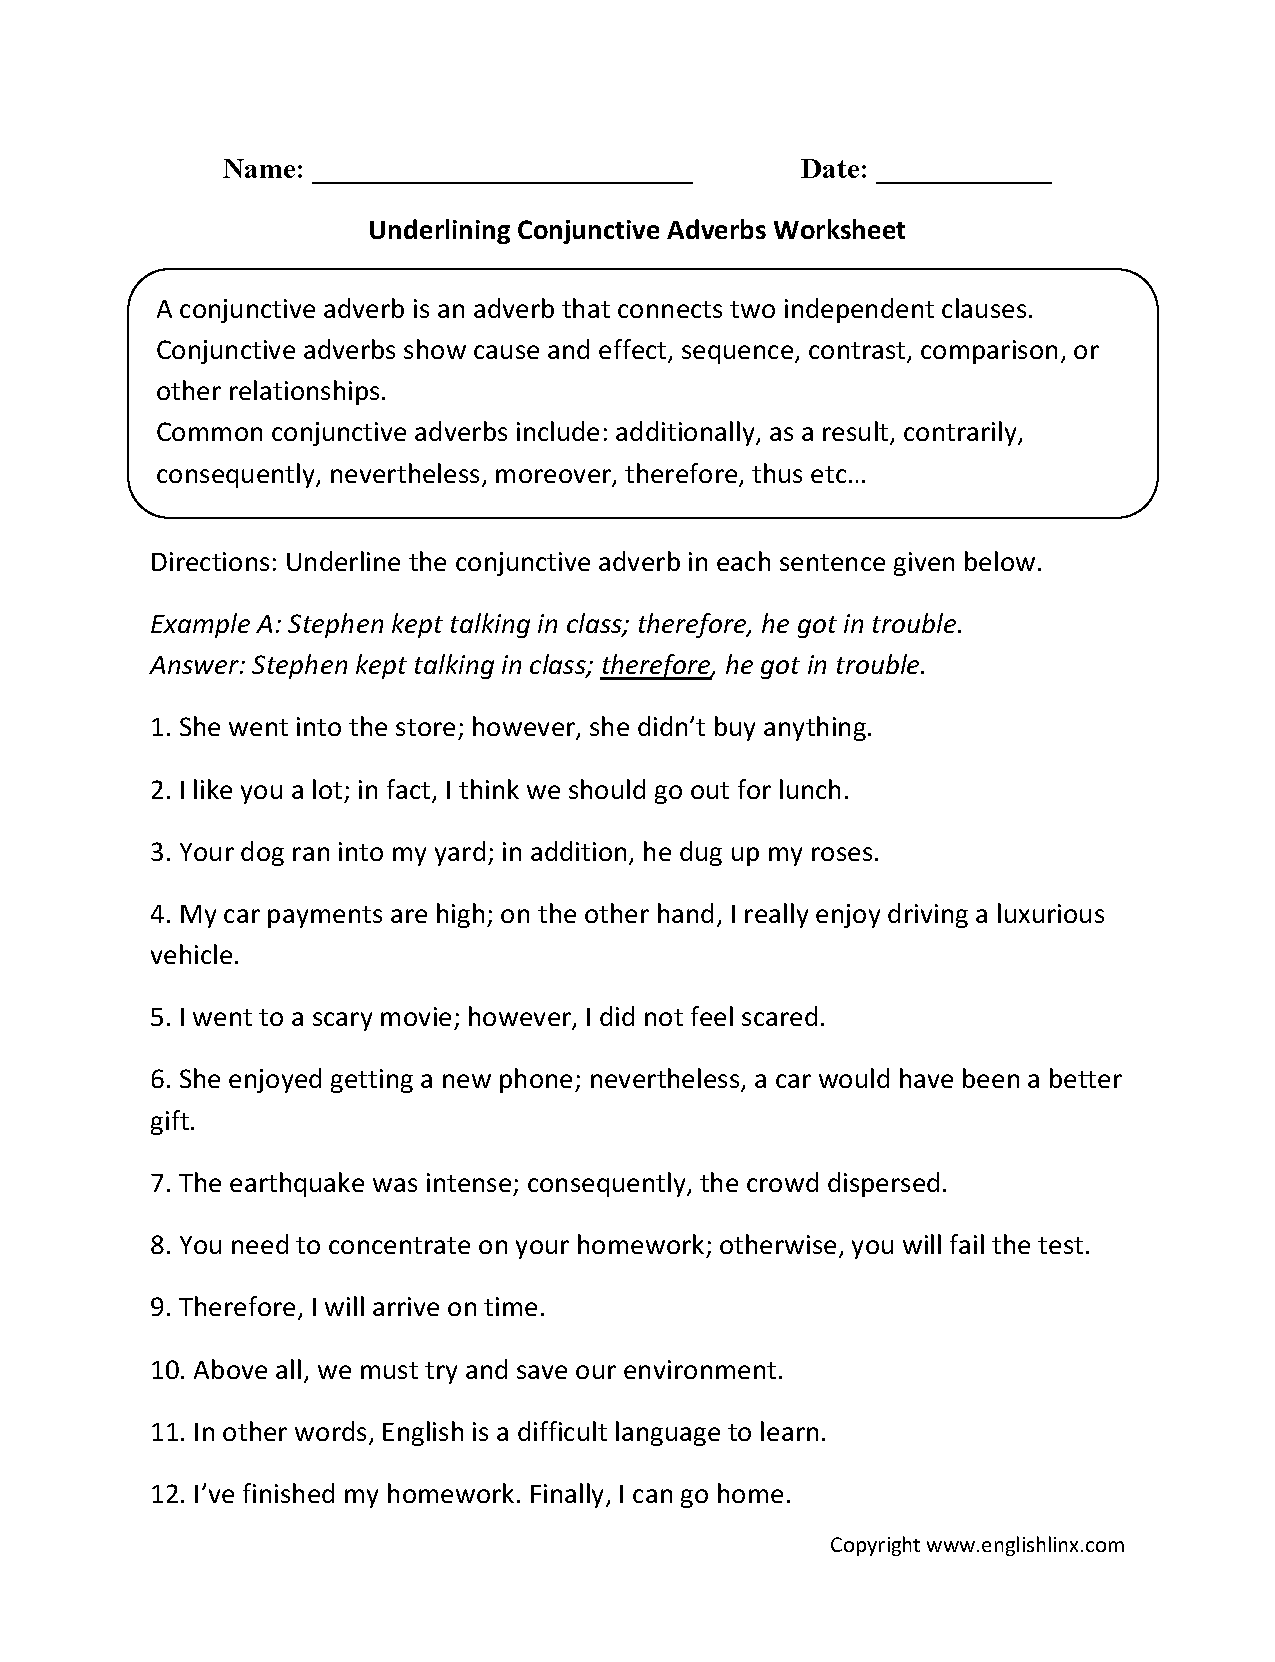 Proatmealus  Inspiring Englishlinxcom  Conjunctions Worksheets With Fair Worksheet With Nice Skip Counting Worksheets Nd Grade Also Identifying Angles Worksheet In Addition Heart Anatomy Worksheet And First Grade Sight Word Worksheets As Well As Improper Fractions And Mixed Numbers Worksheet Additionally Th Grade Math Worksheets With Answers From Englishlinxcom With Proatmealus  Fair Englishlinxcom  Conjunctions Worksheets With Nice Worksheet And Inspiring Skip Counting Worksheets Nd Grade Also Identifying Angles Worksheet In Addition Heart Anatomy Worksheet From Englishlinxcom